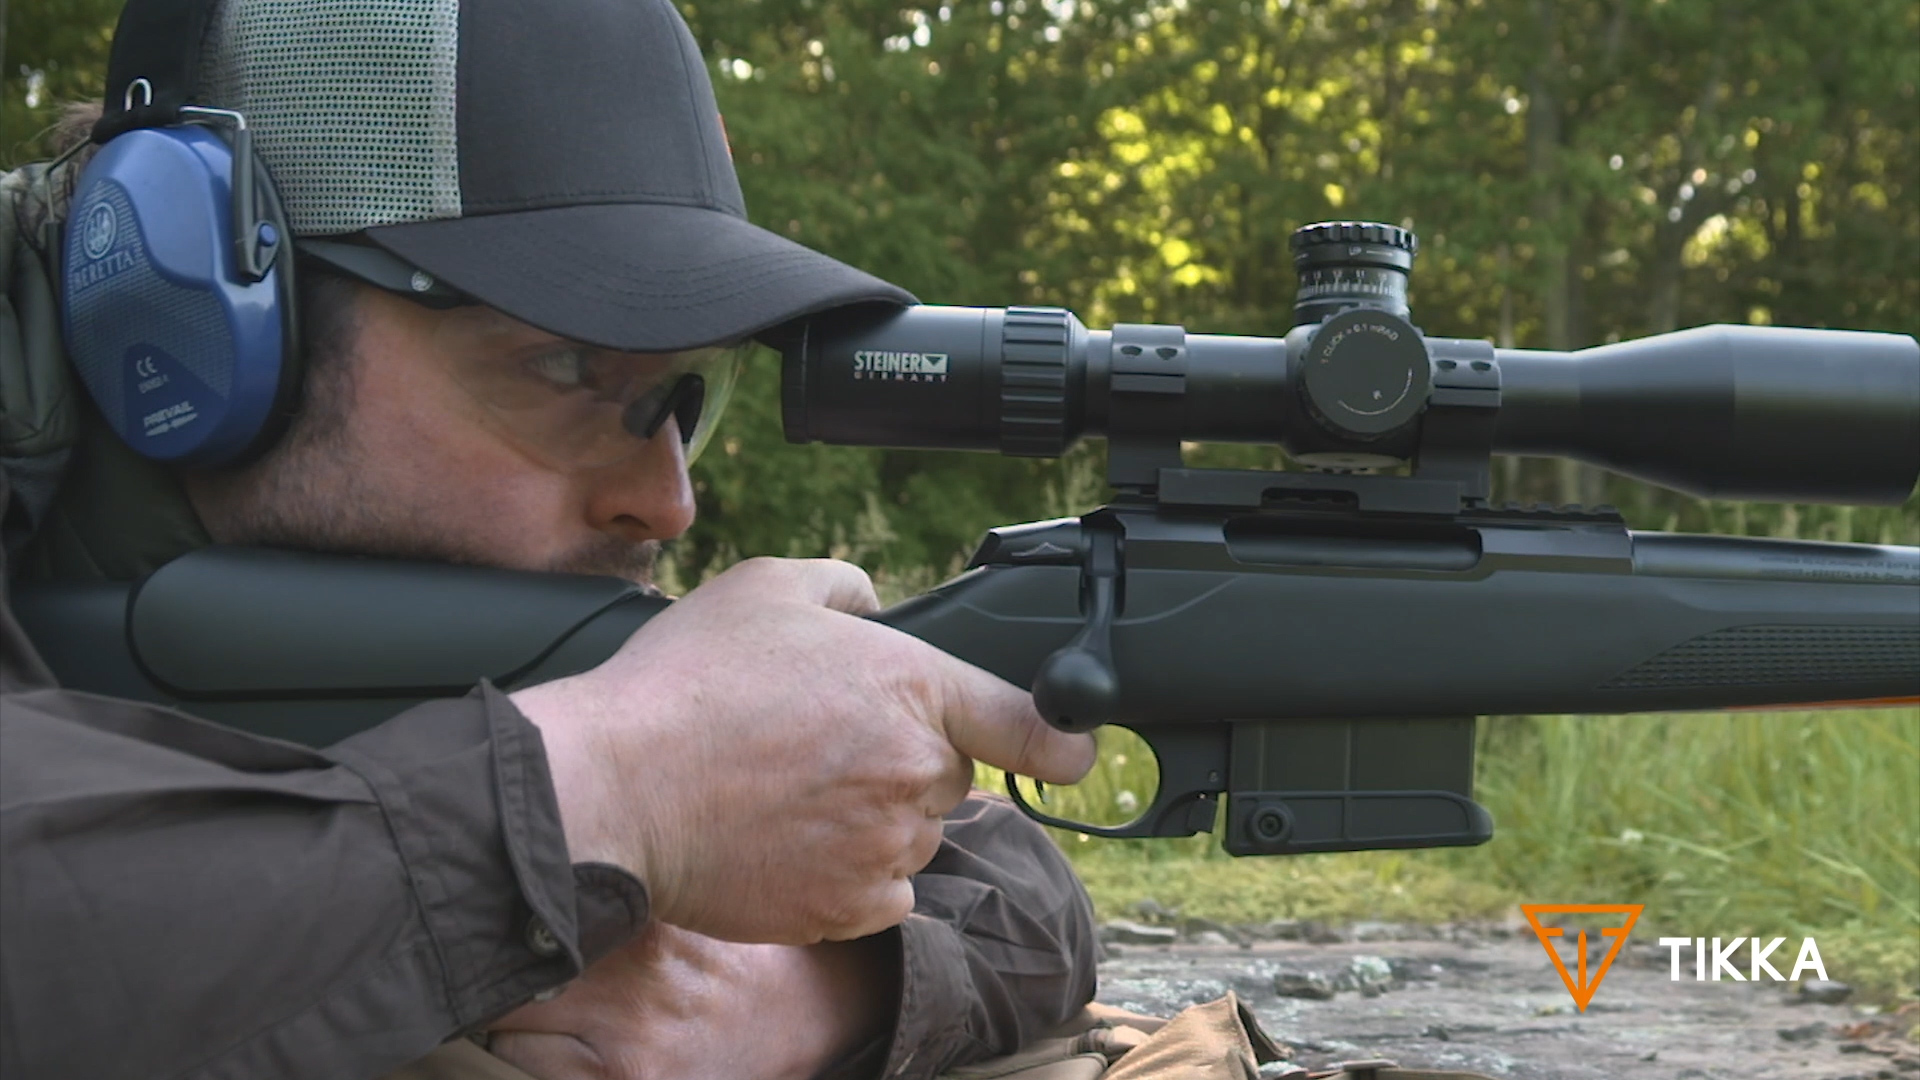 T3x Compact Tactical Rifle